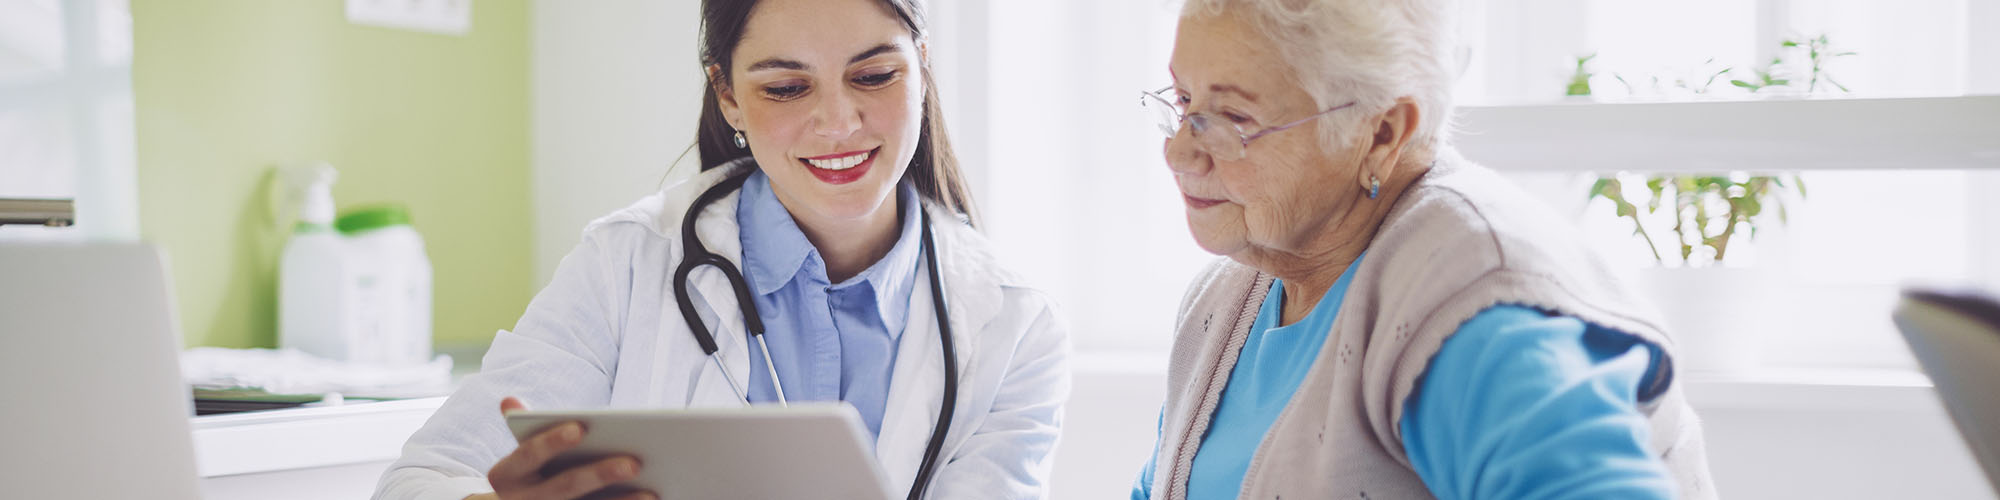 Reviewing a vision care plan